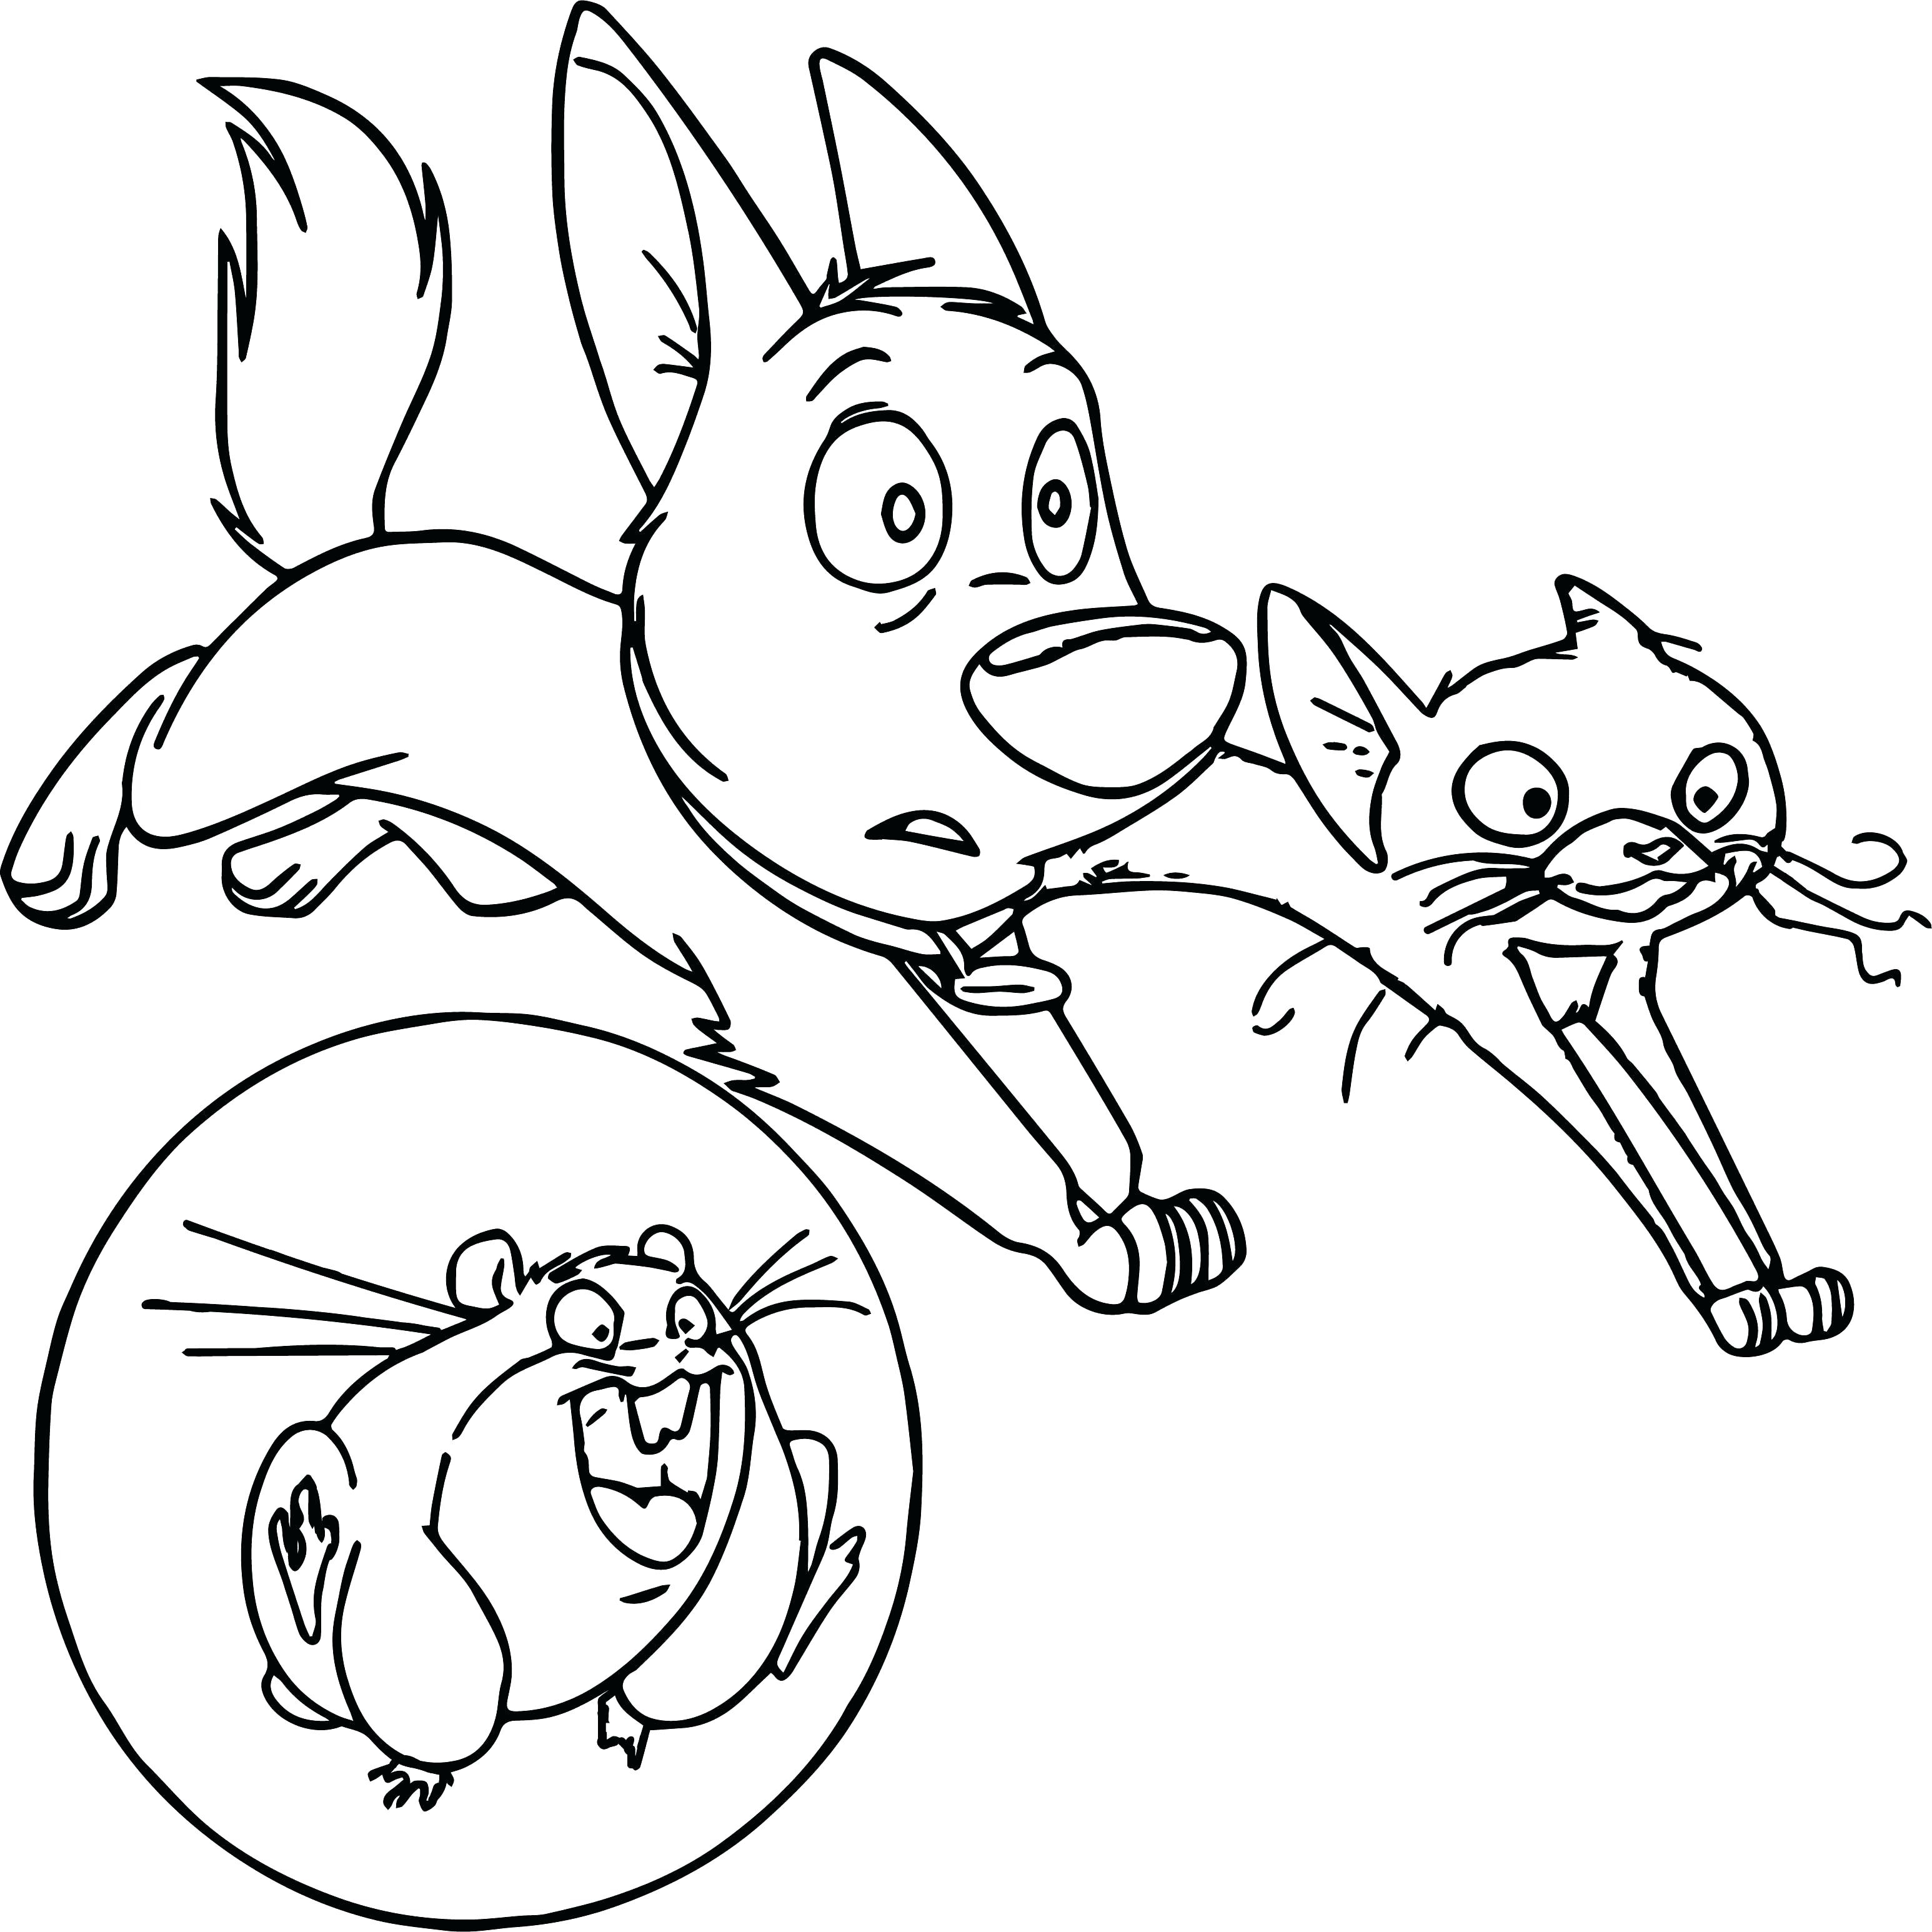 Baby Hamster Coloring Pages Cute Hamster Drawing at GetDrawings Free download